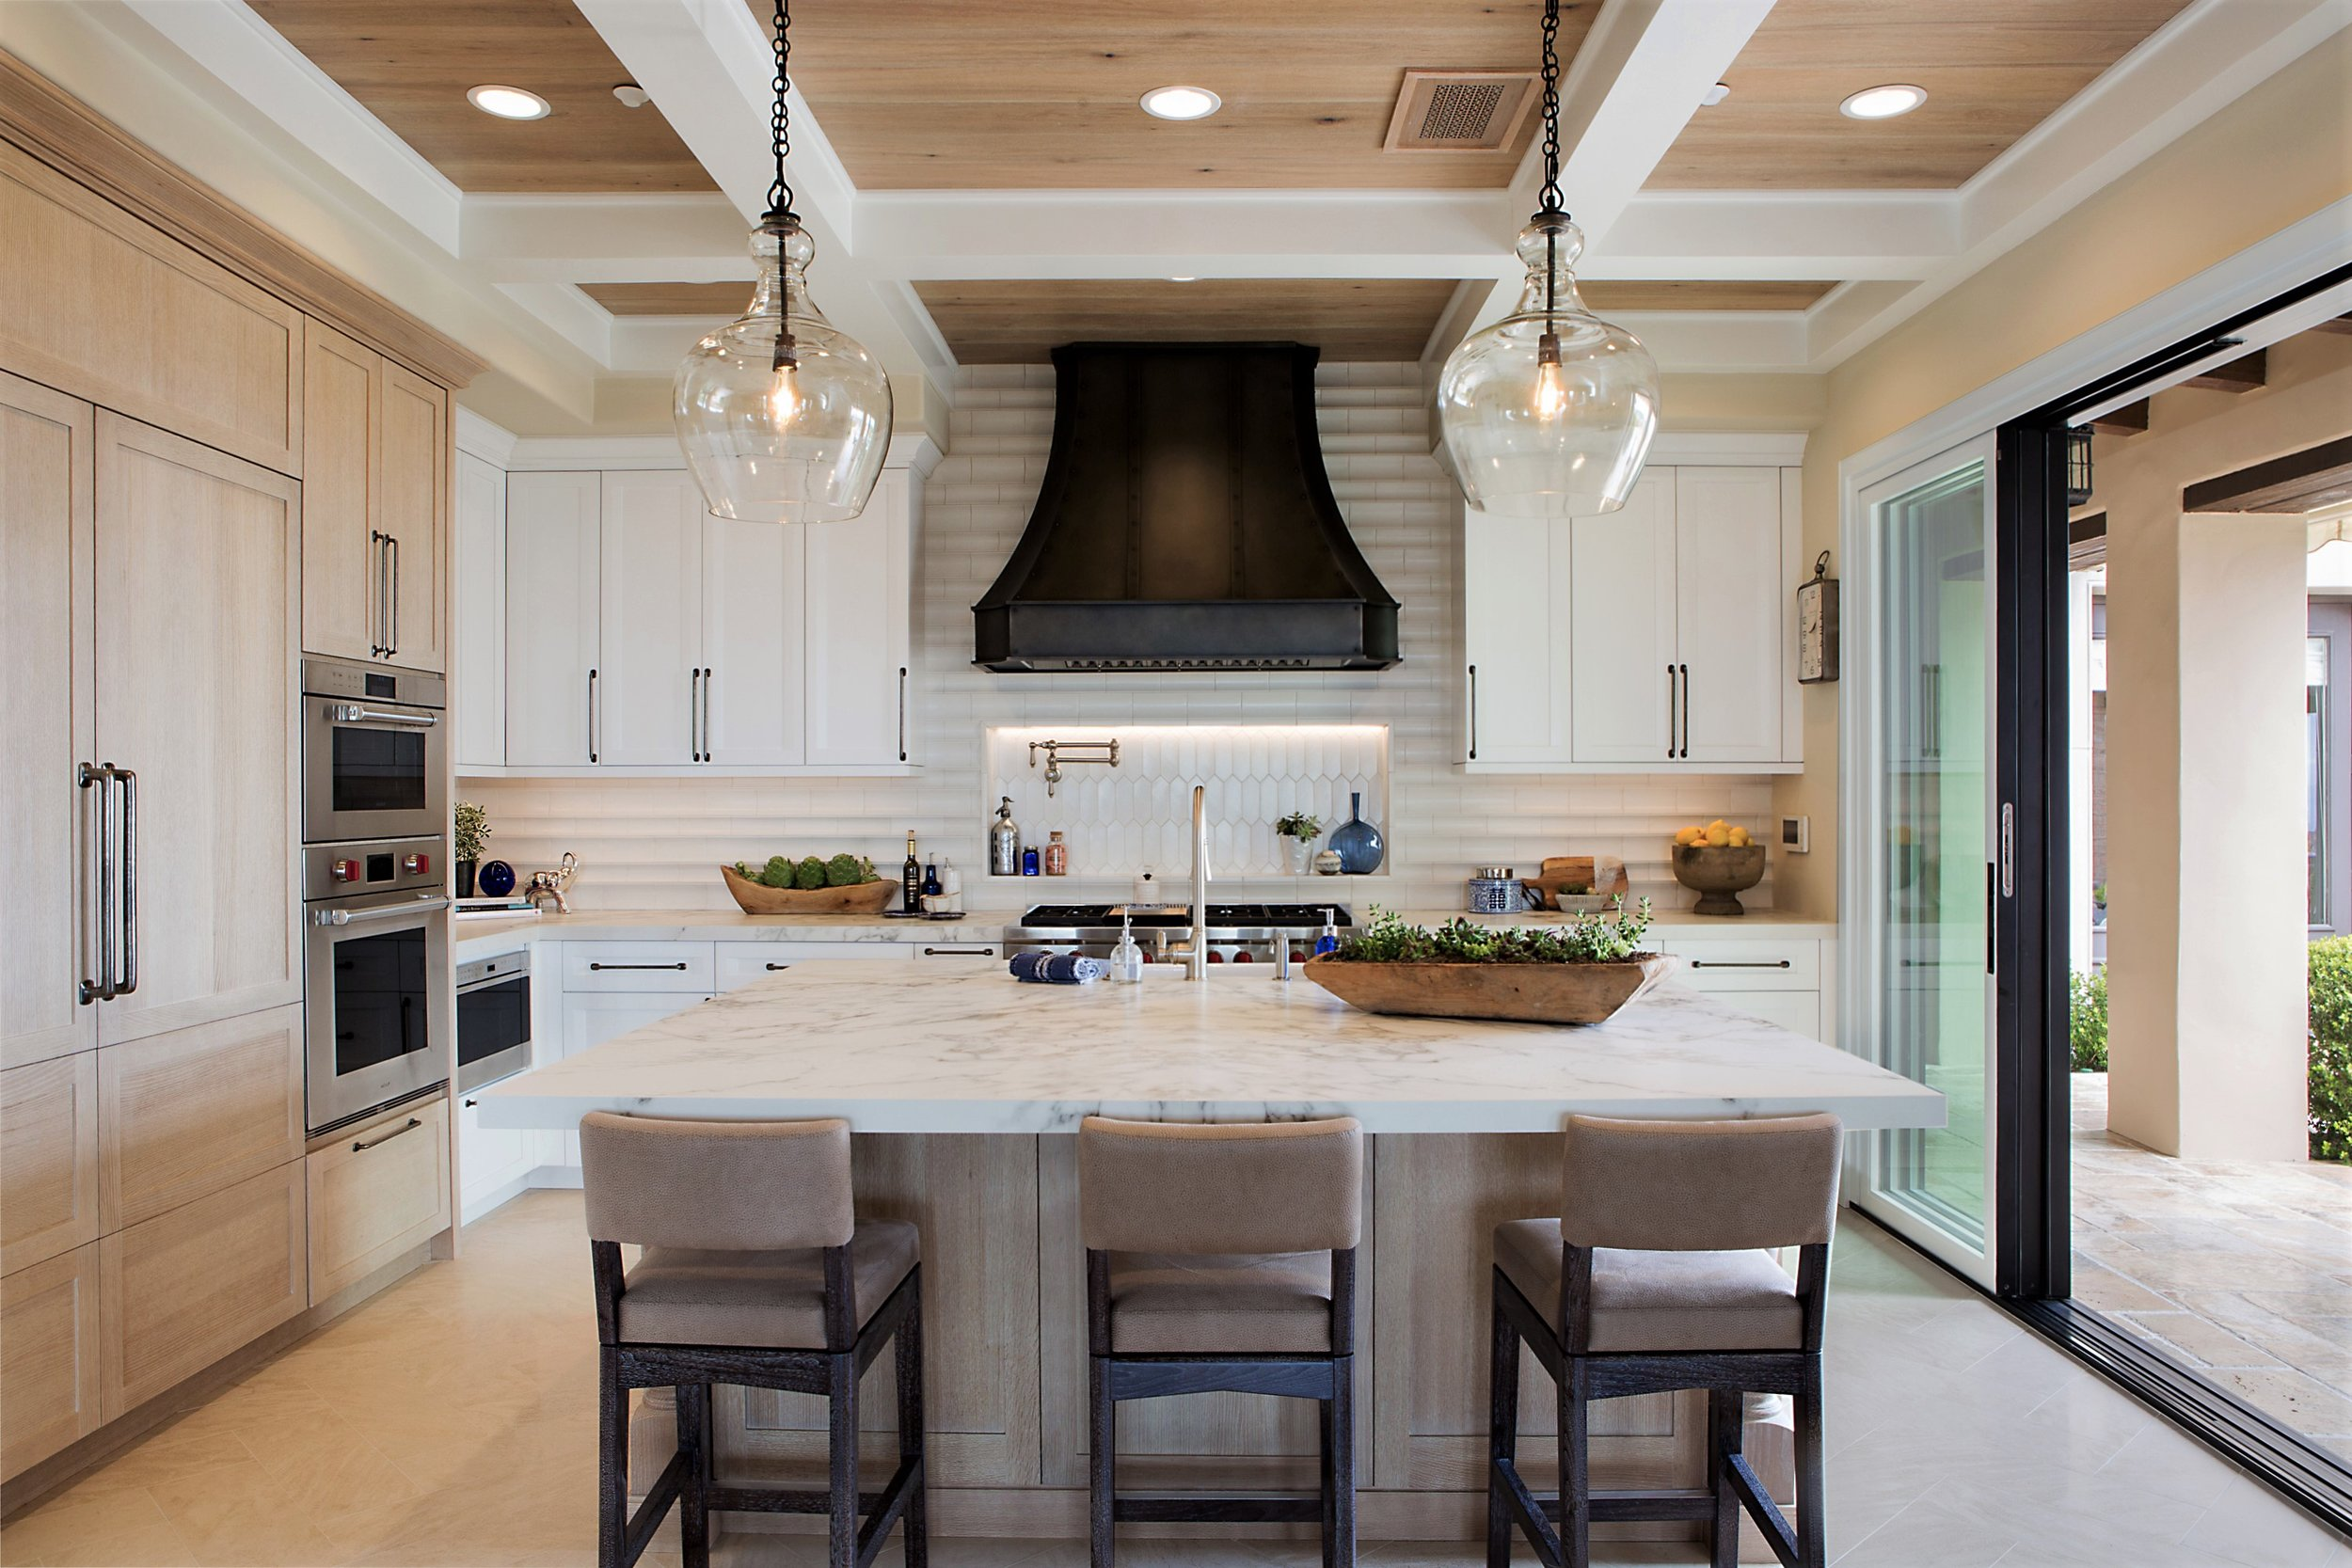 High Style Luxury Detailing For A High End Kitchen Remodel